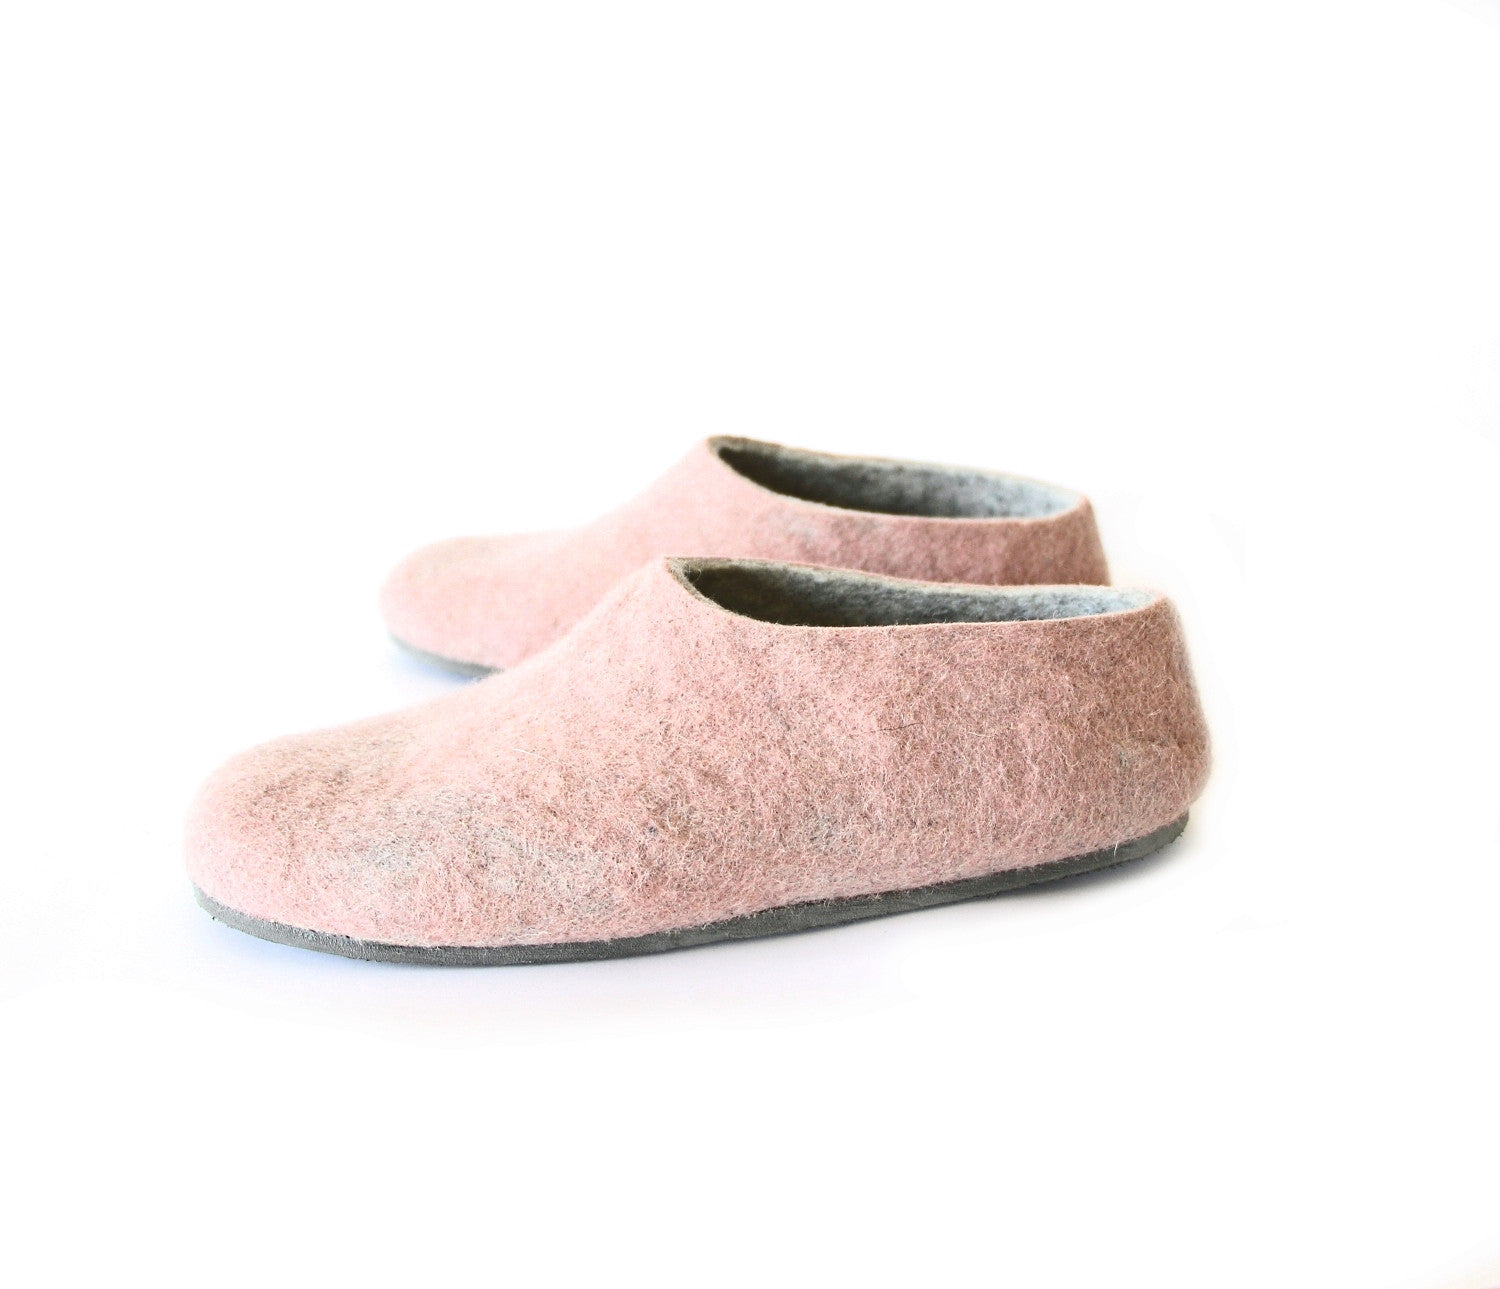 Dusty Rose Wool Slippers